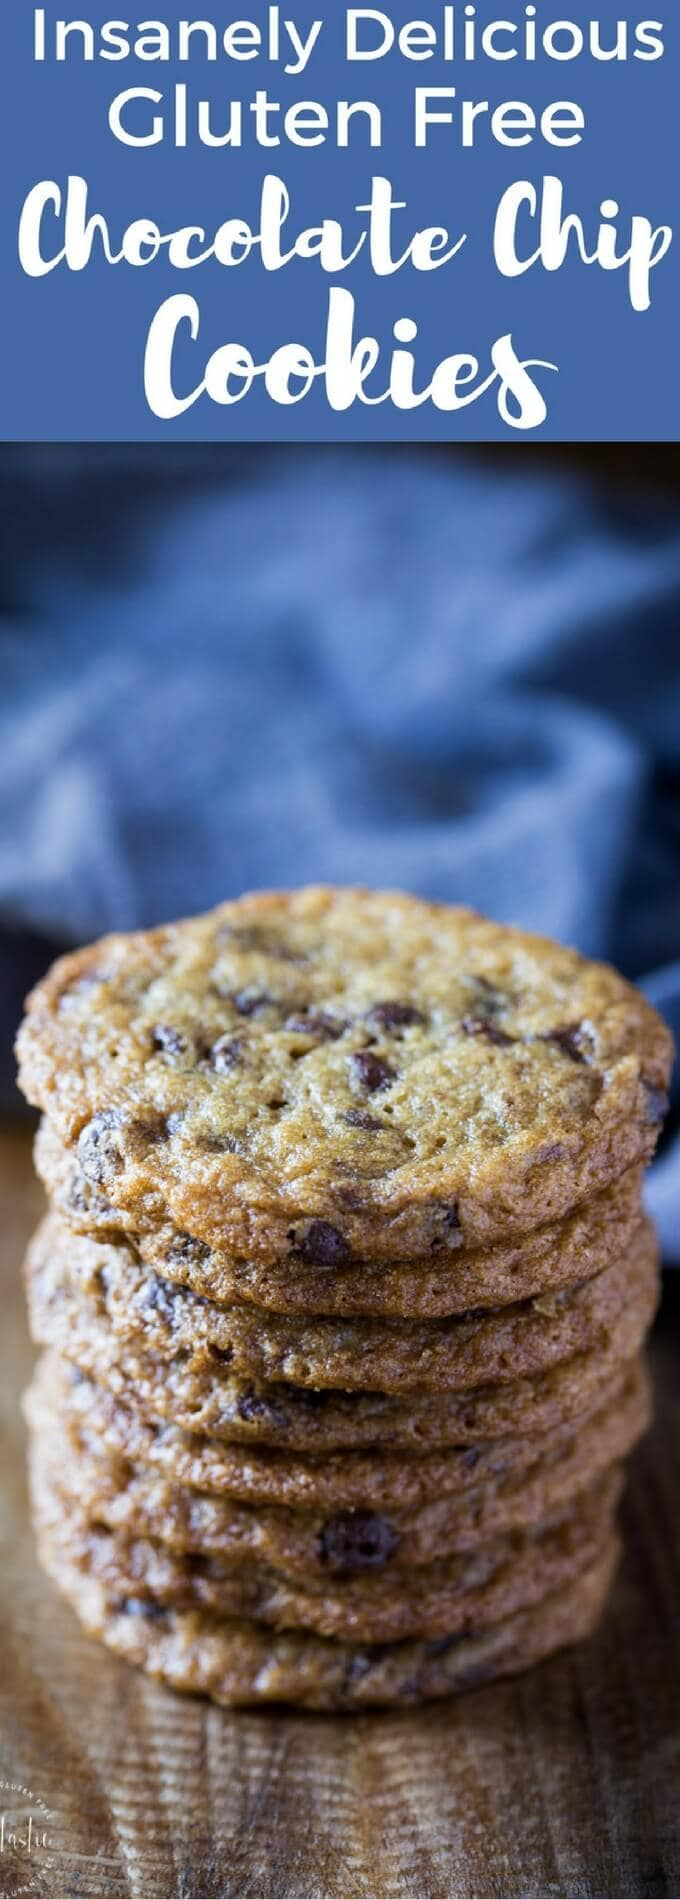 This is the only Gluten Free Chocolate Chip Cookies recipe you'll ever need, I promise! You'll never want to go back to store bought gluten free cookies again after you taste these, they are insanely delicious and have just the right amount of 'crunch', you'll love them!